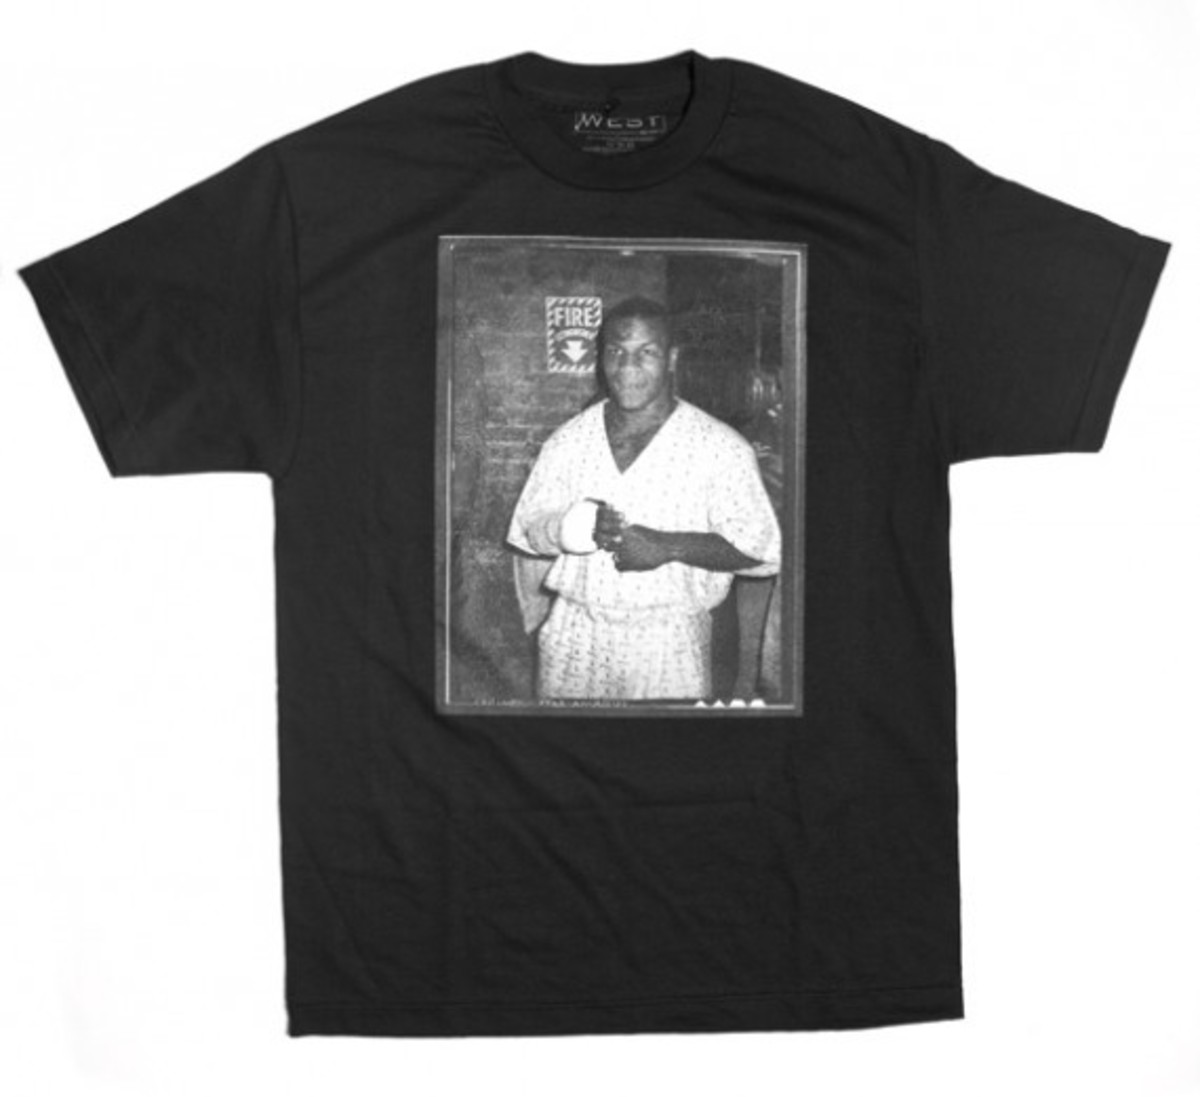 ricky-powell-west-tshirt-03